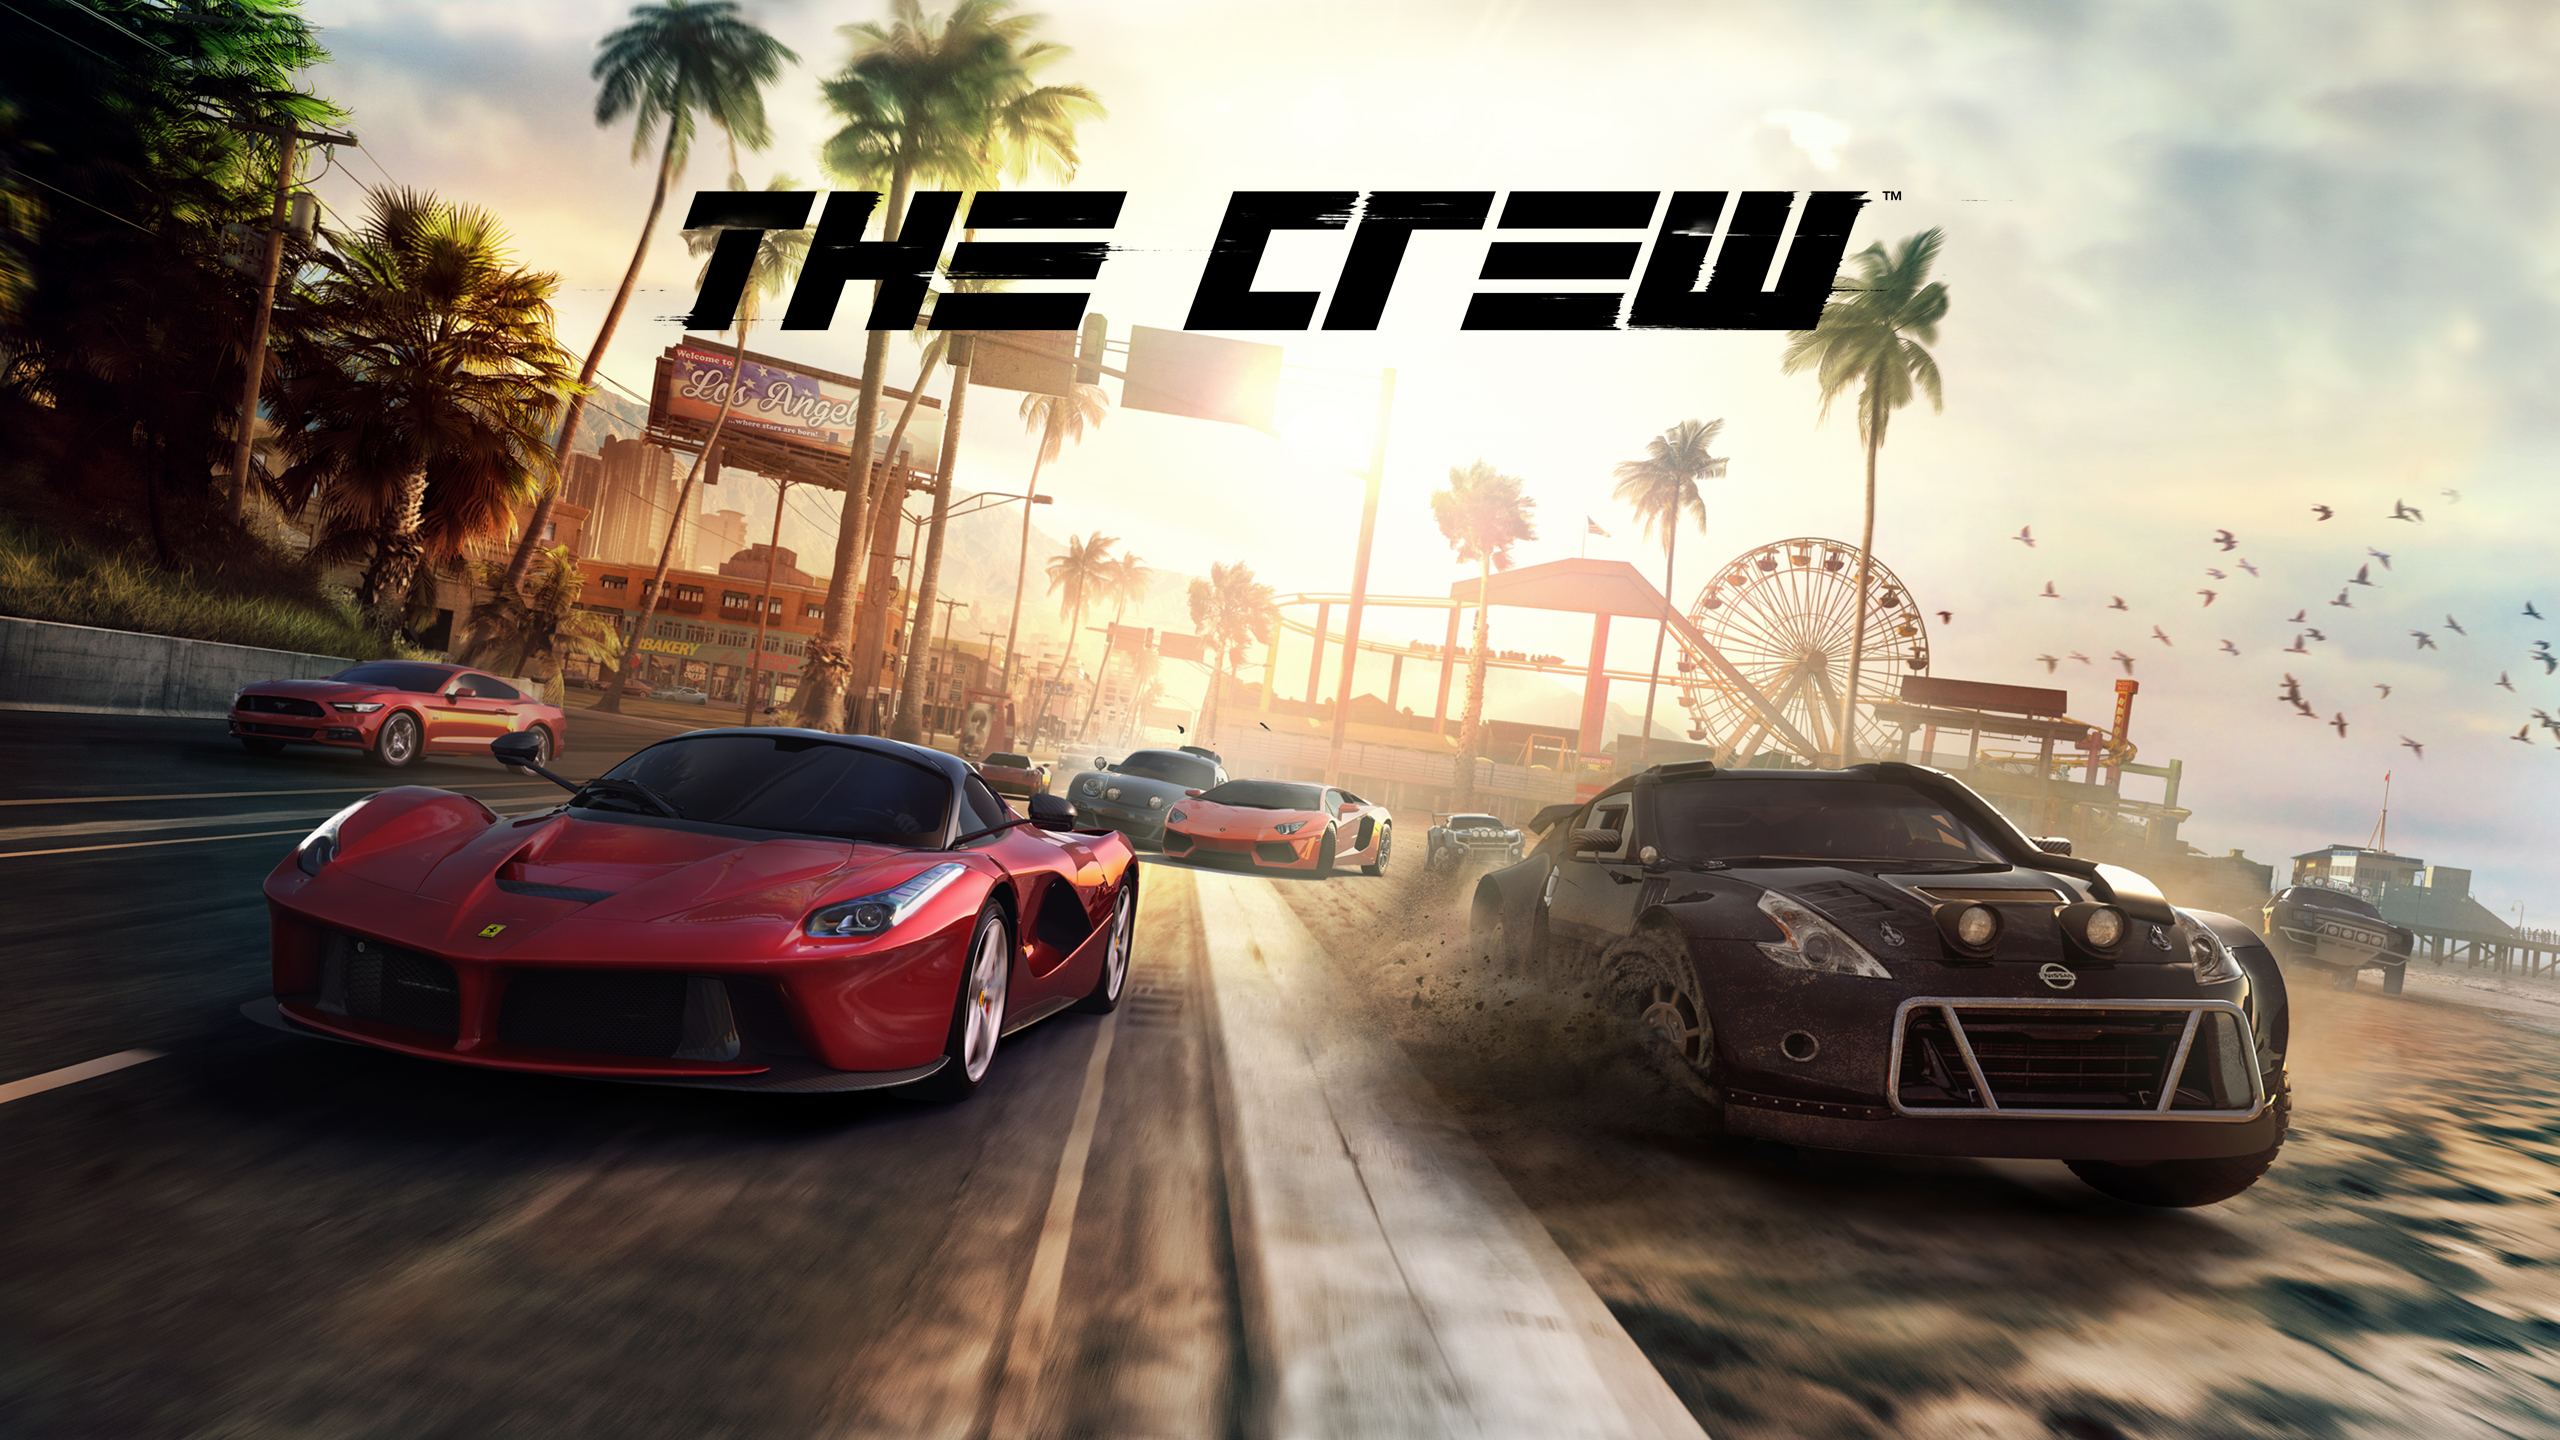 Download Wallpaper New Dawn Ubiclub: The Crew® Game Wallpapers